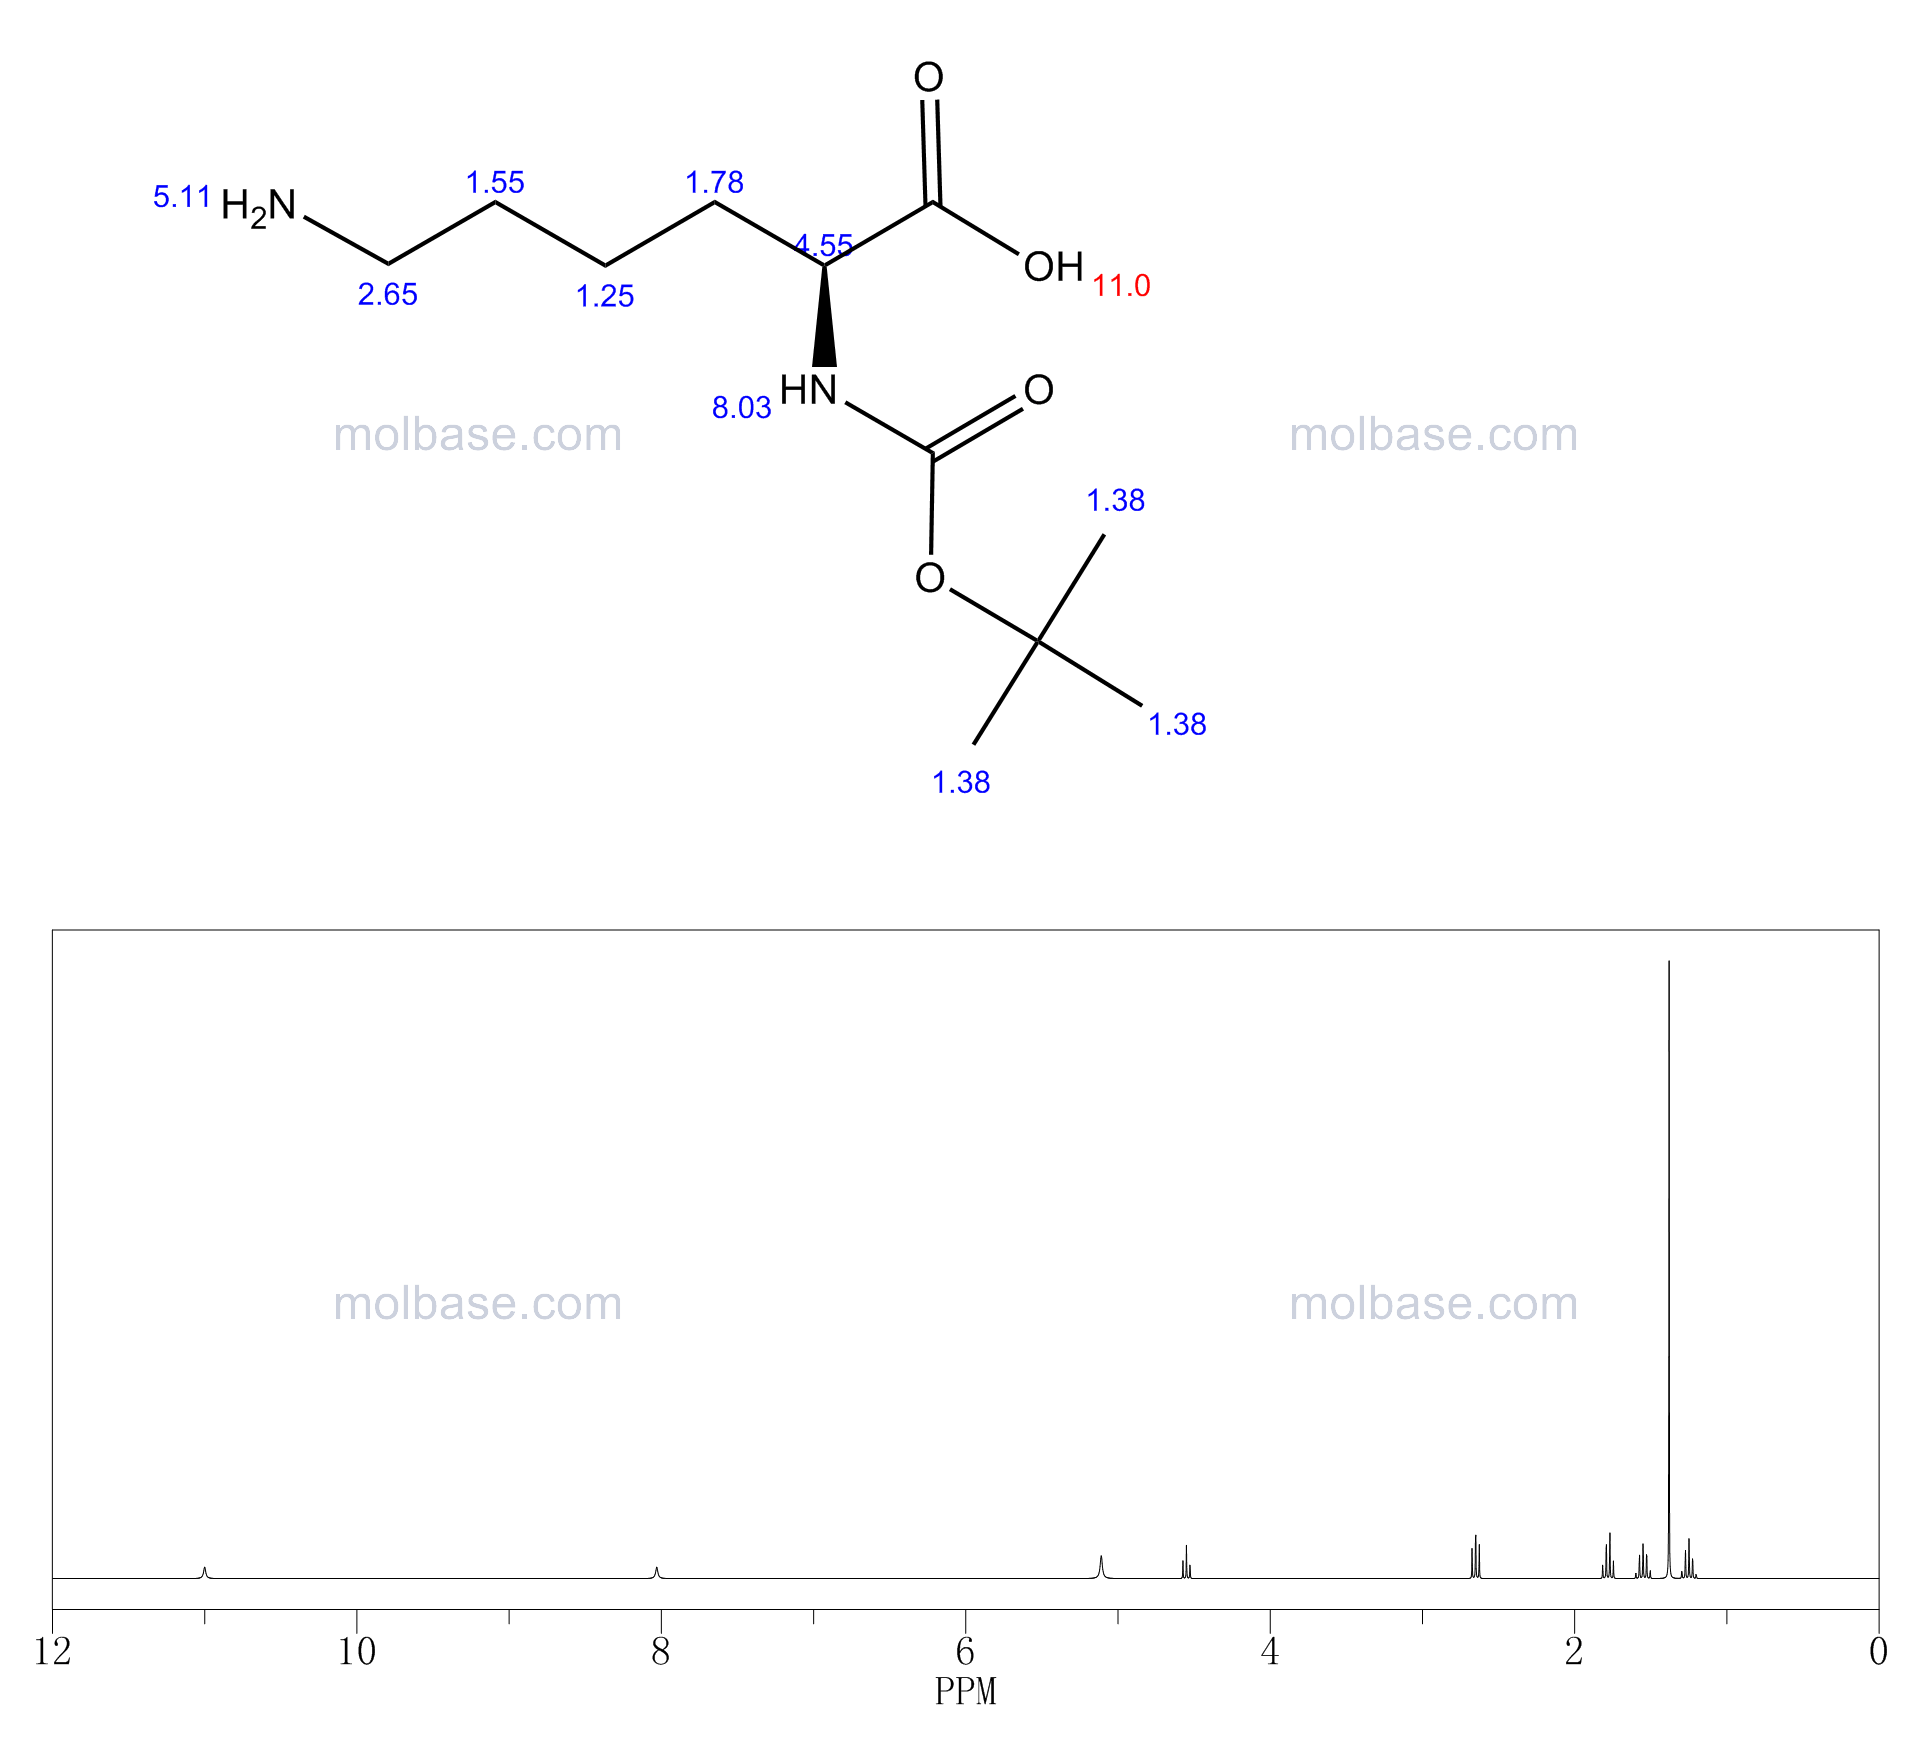 N-alpha-(tert-Butoxycarbonyl)-L-lysine NMR spectra analysis, Chemical CAS NO. 13734-28-6 NMR spectral analysis, N-alpha-(tert-Butoxycarbonyl)-L-lysine C-NMR spectrum